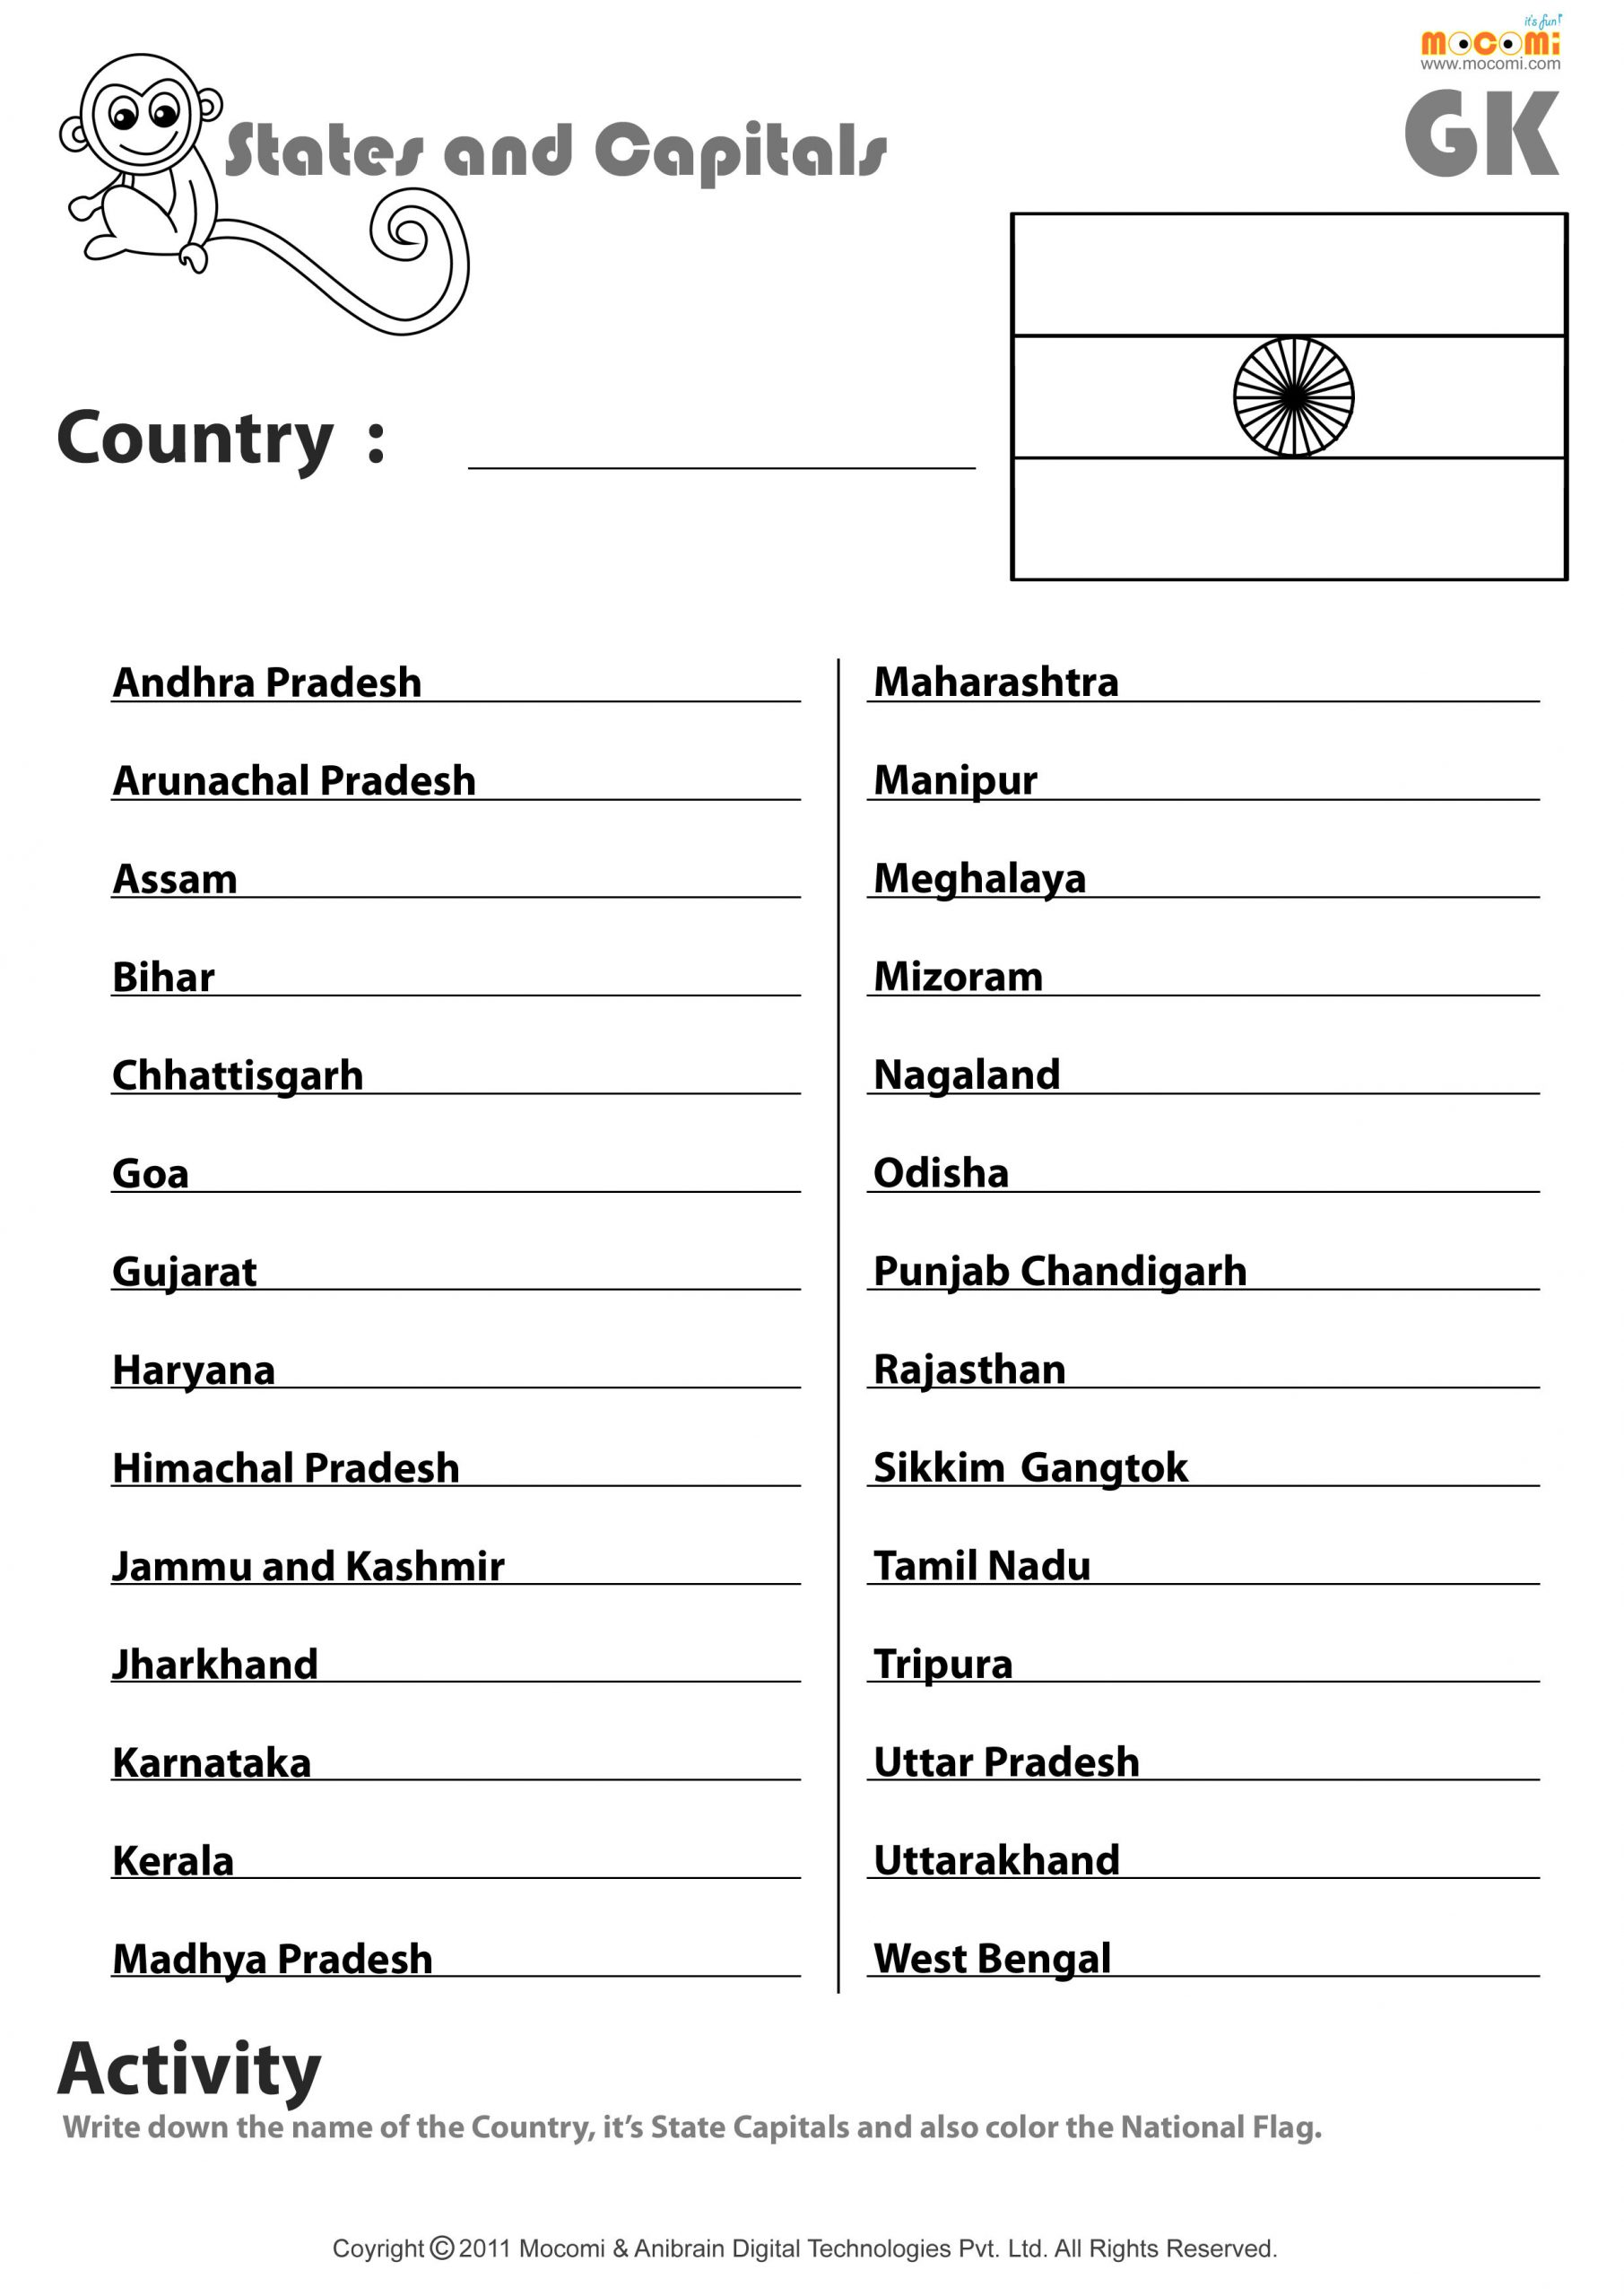 Printable States and Capitals Quiz Indian States and their Capitals English Worksheets for